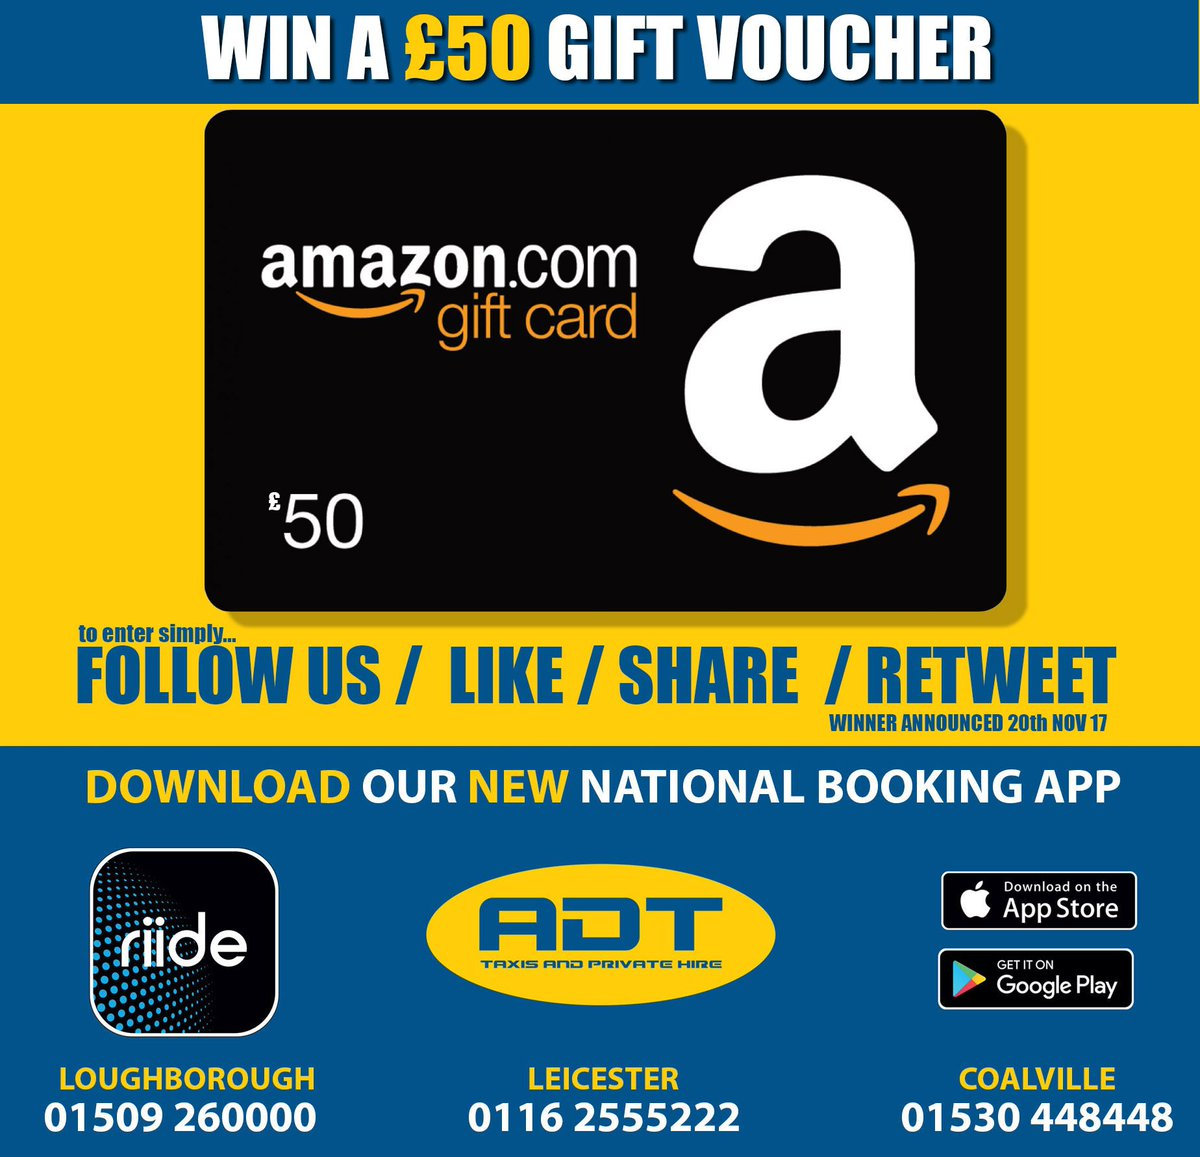 WIN £50 Amazon Gift Vouchers ! How !? Simply FOLLOW our Twitter...  RT &amp;  this tweet and tweet us what you would like to use the £50 gift vouchers for maybe !? What would YOU spend it on ? #win #gift #prize #competition #free #voucher #£50 #enter #taxi #cab #adttaxis #RT<br>http://pic.twitter.com/onSHkBTodx